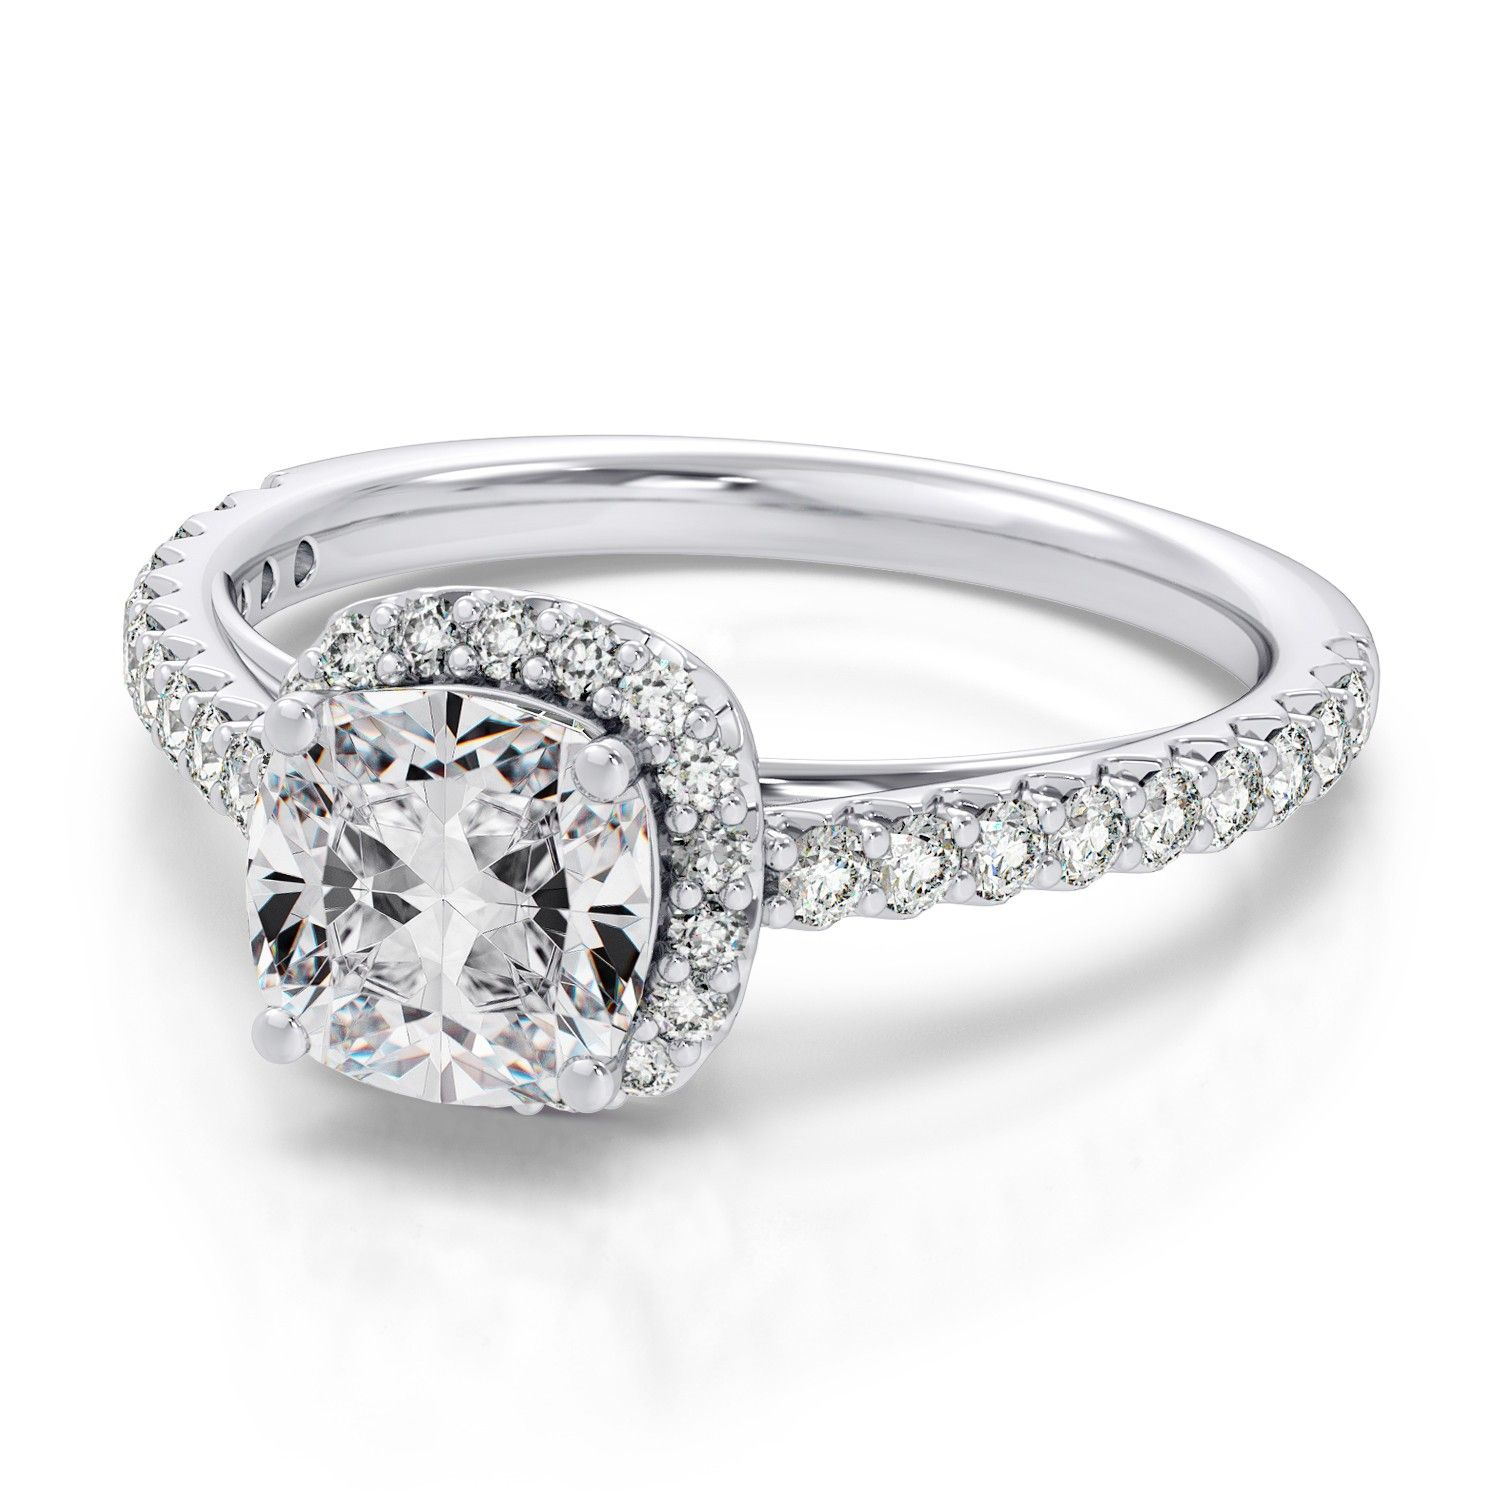 .41ctw Cushion Cut Vintage Halo Engagement Diamond Ring in